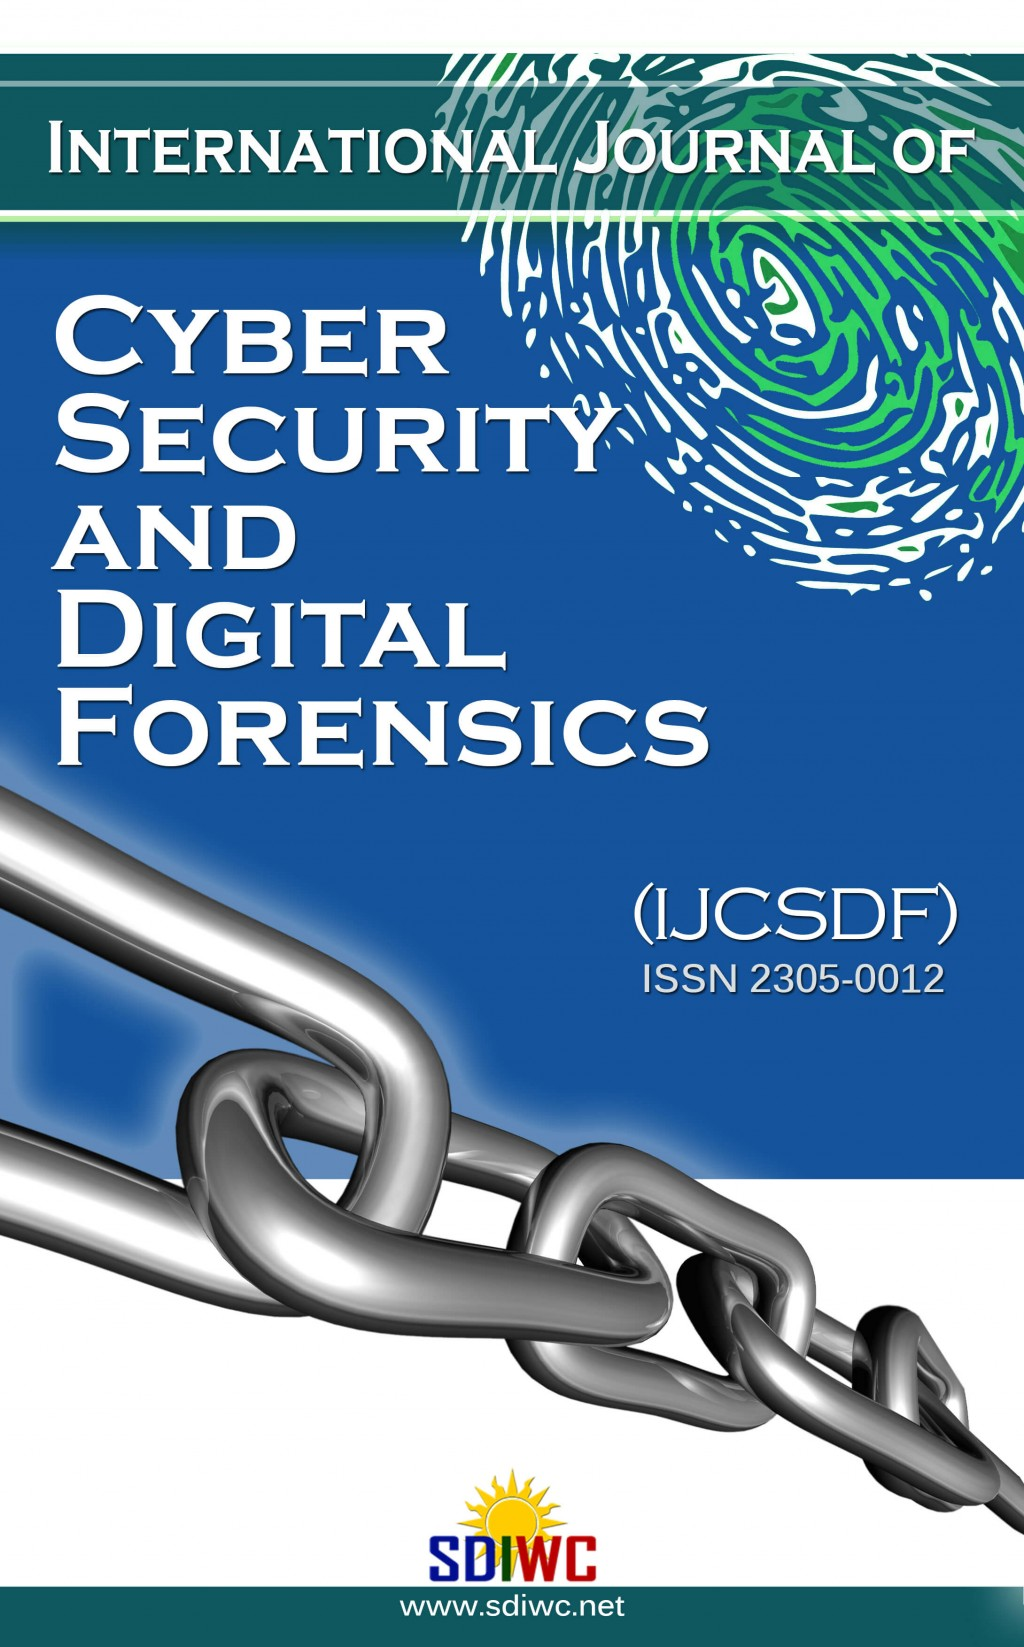 013 Research Paper Cyber Security Papers Pdf Ijcsdf Amazing On Large